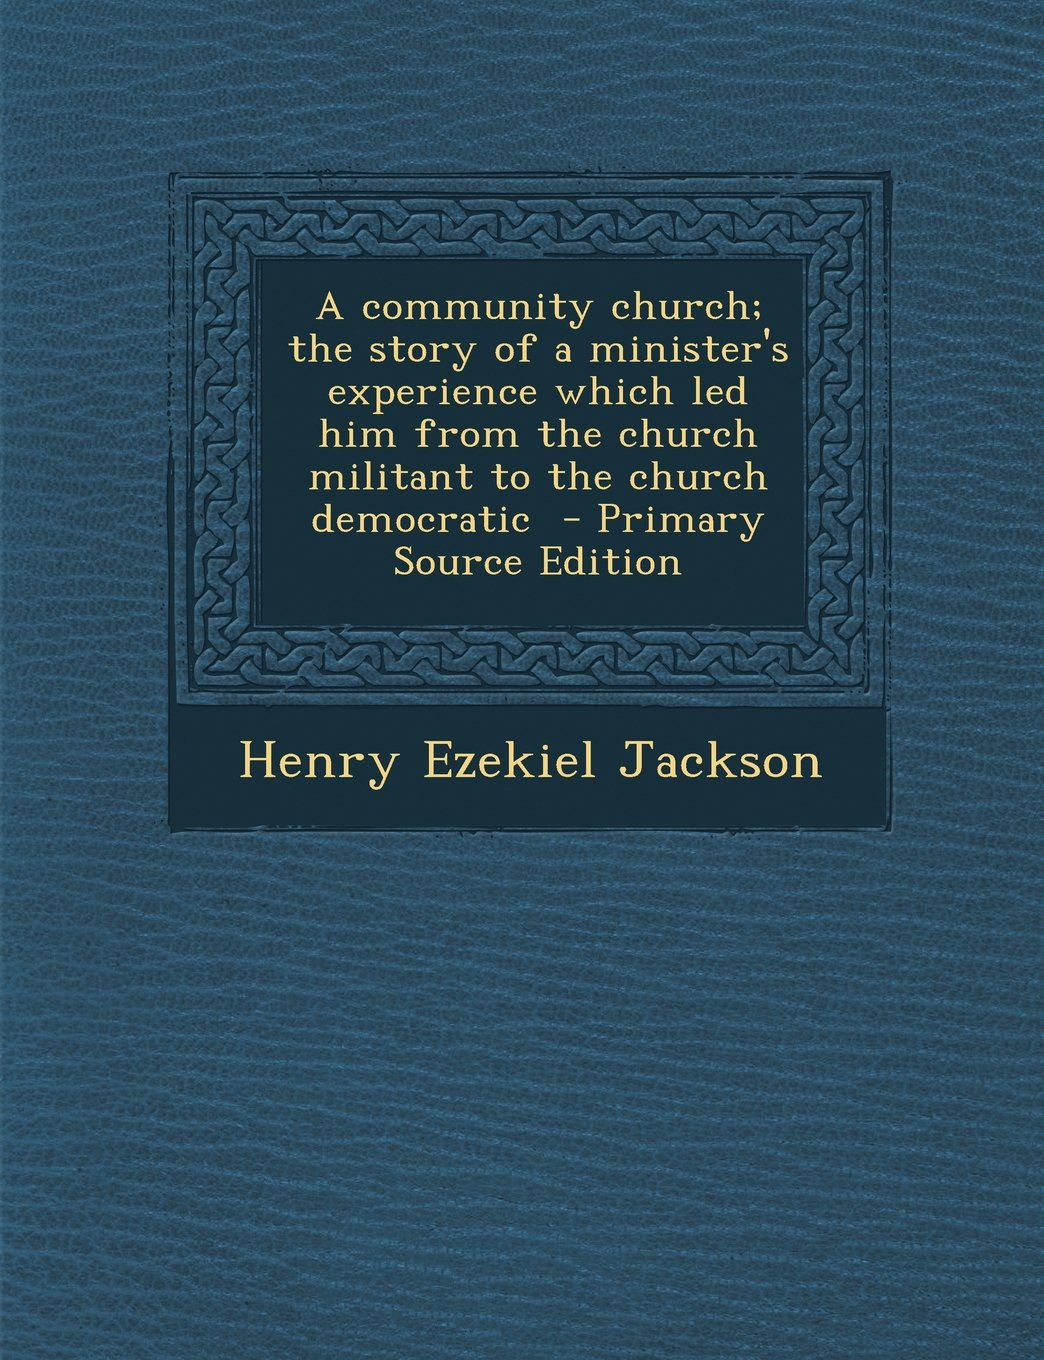 Download A community church; the story of a minister's experience which led him from the church militant to the church democratic  - Primary Source Edition pdf epub